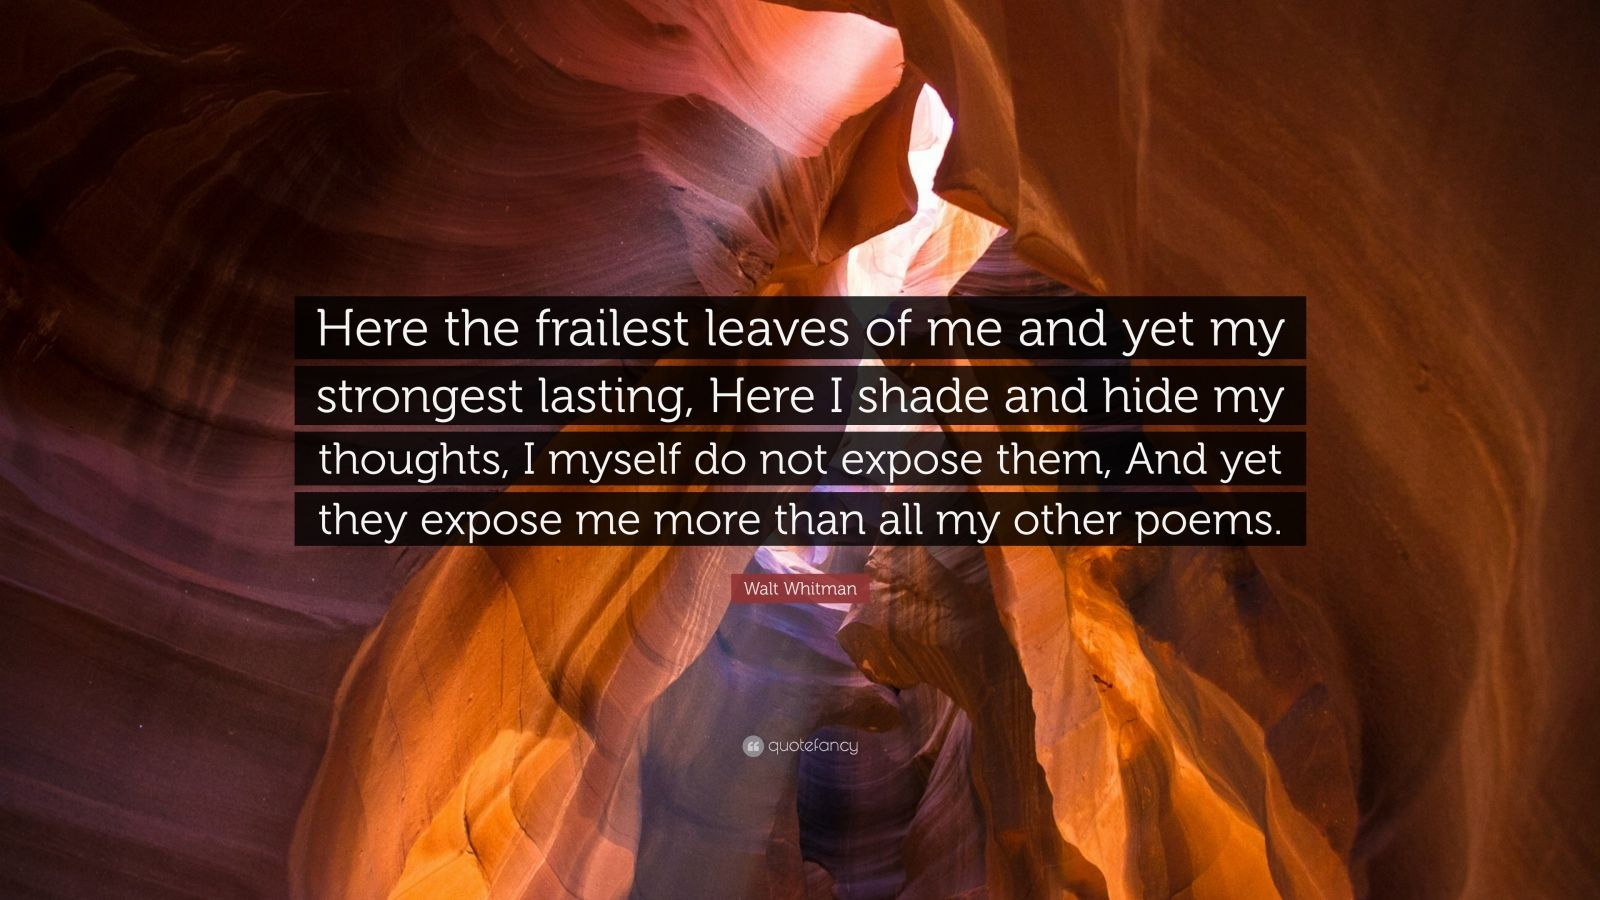 """Walt Whitman Quote: """"Here the frailest leaves of me and yet my strongest lasting, Here I shade and hide my thoughts, I myself do not expose them, And yet they expose me more than all my other poems."""""""